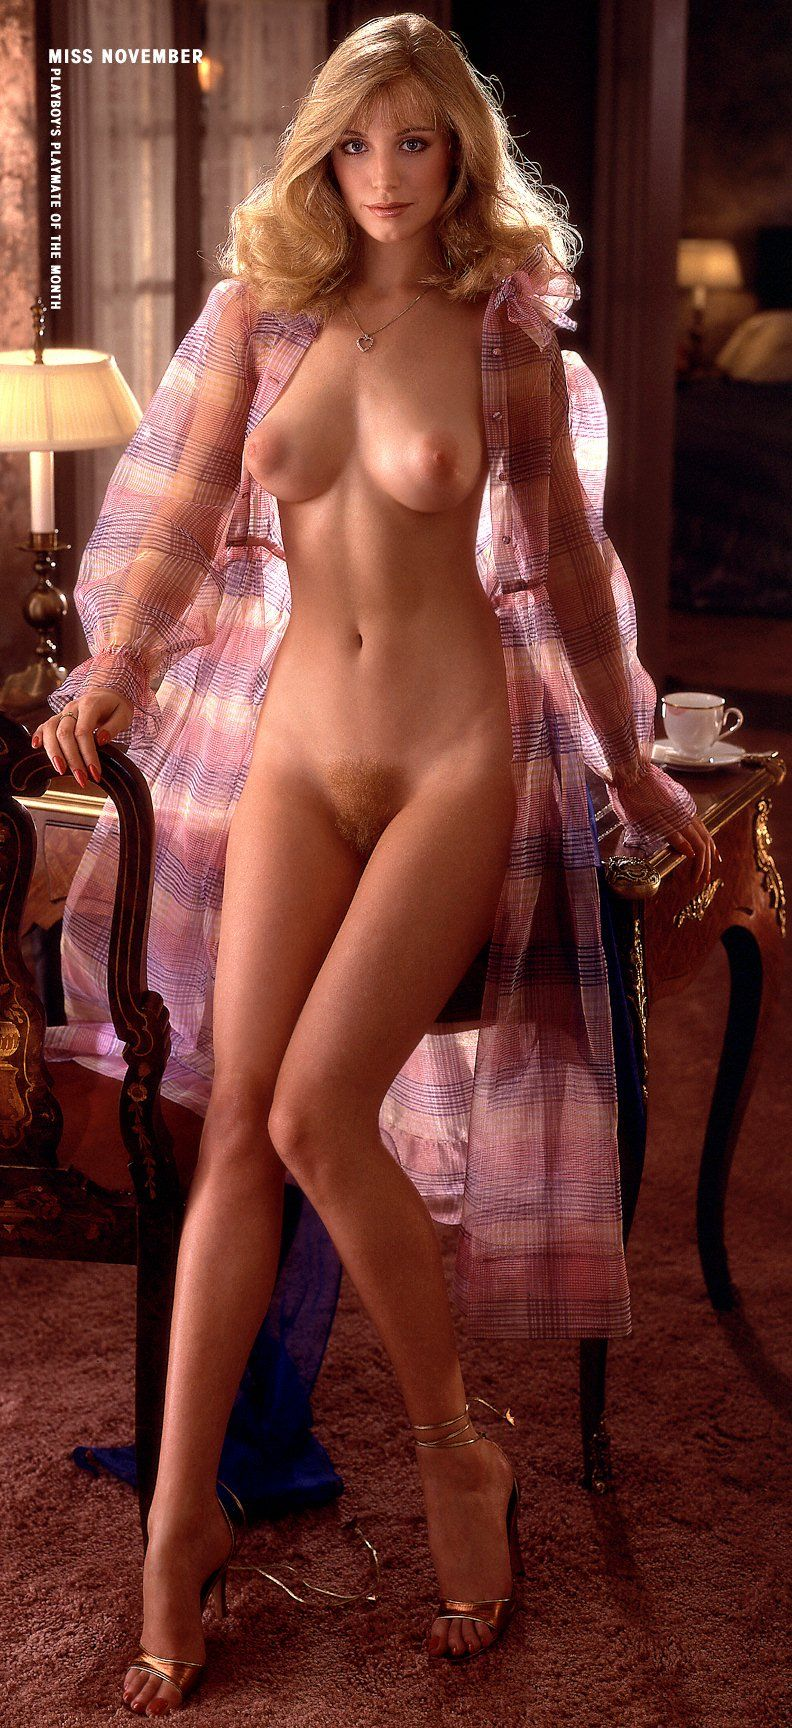 12 best playboy 1981 images on pinterest | playboy playmates, mobile